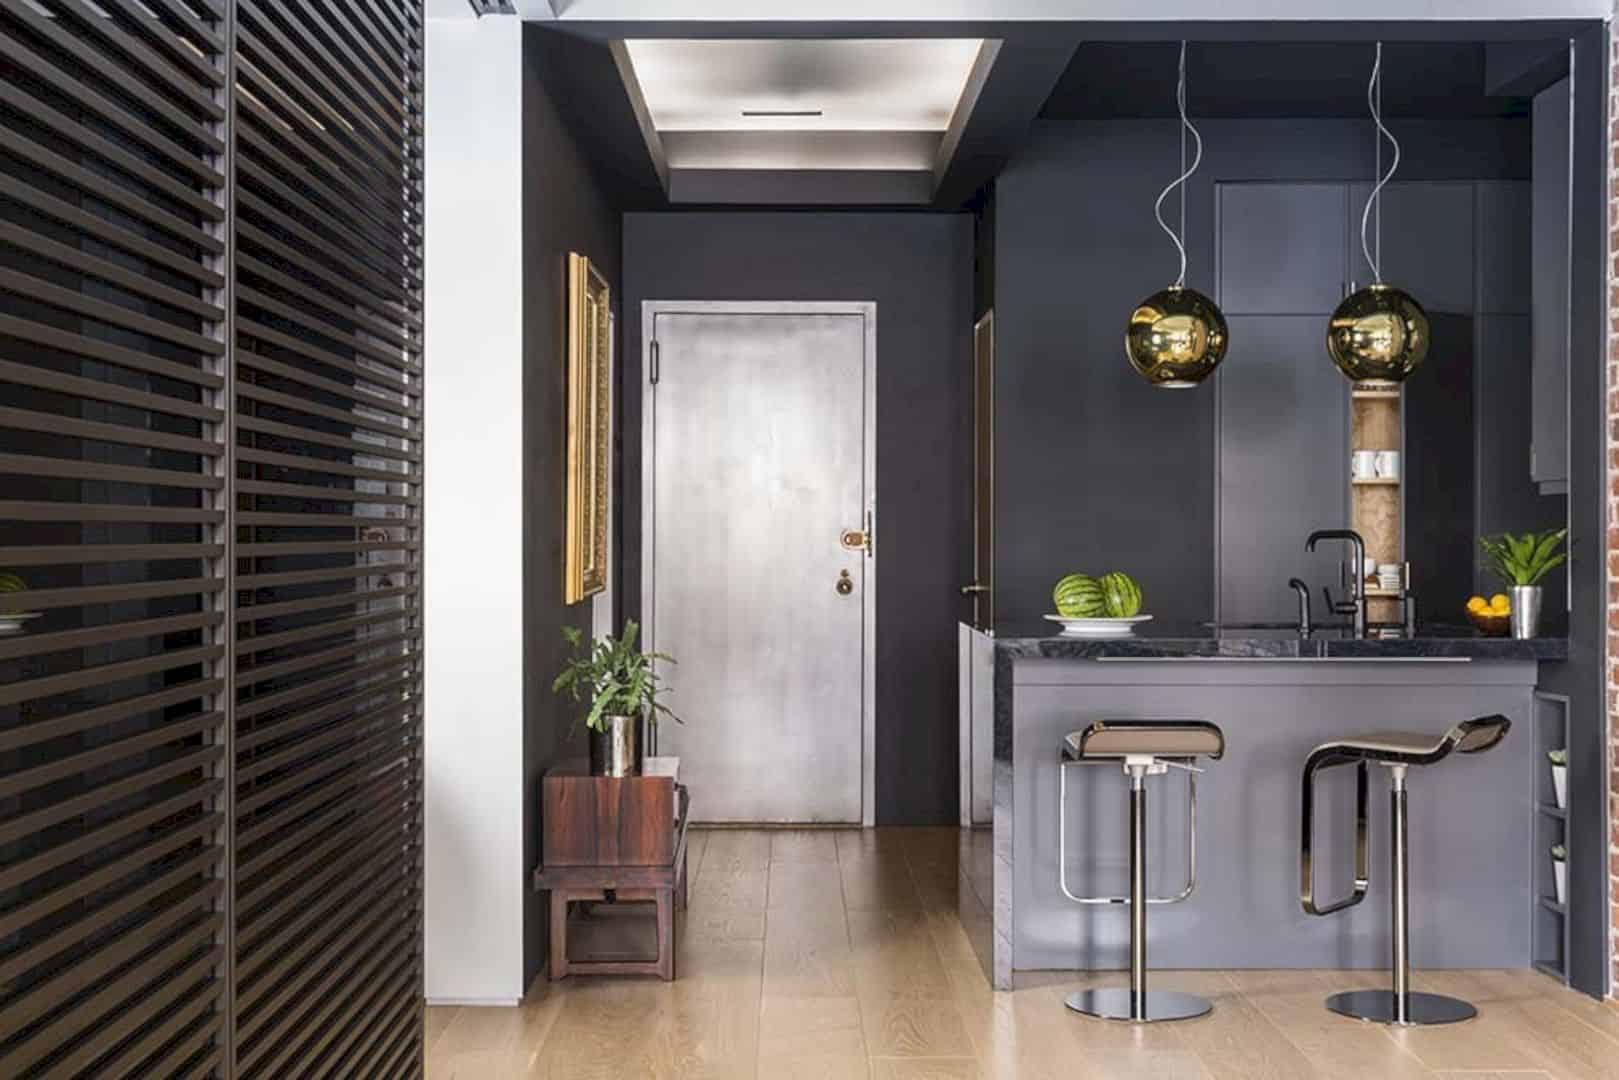 Chelsea Loft Apartment: A Living Place at the Top Floor of ...